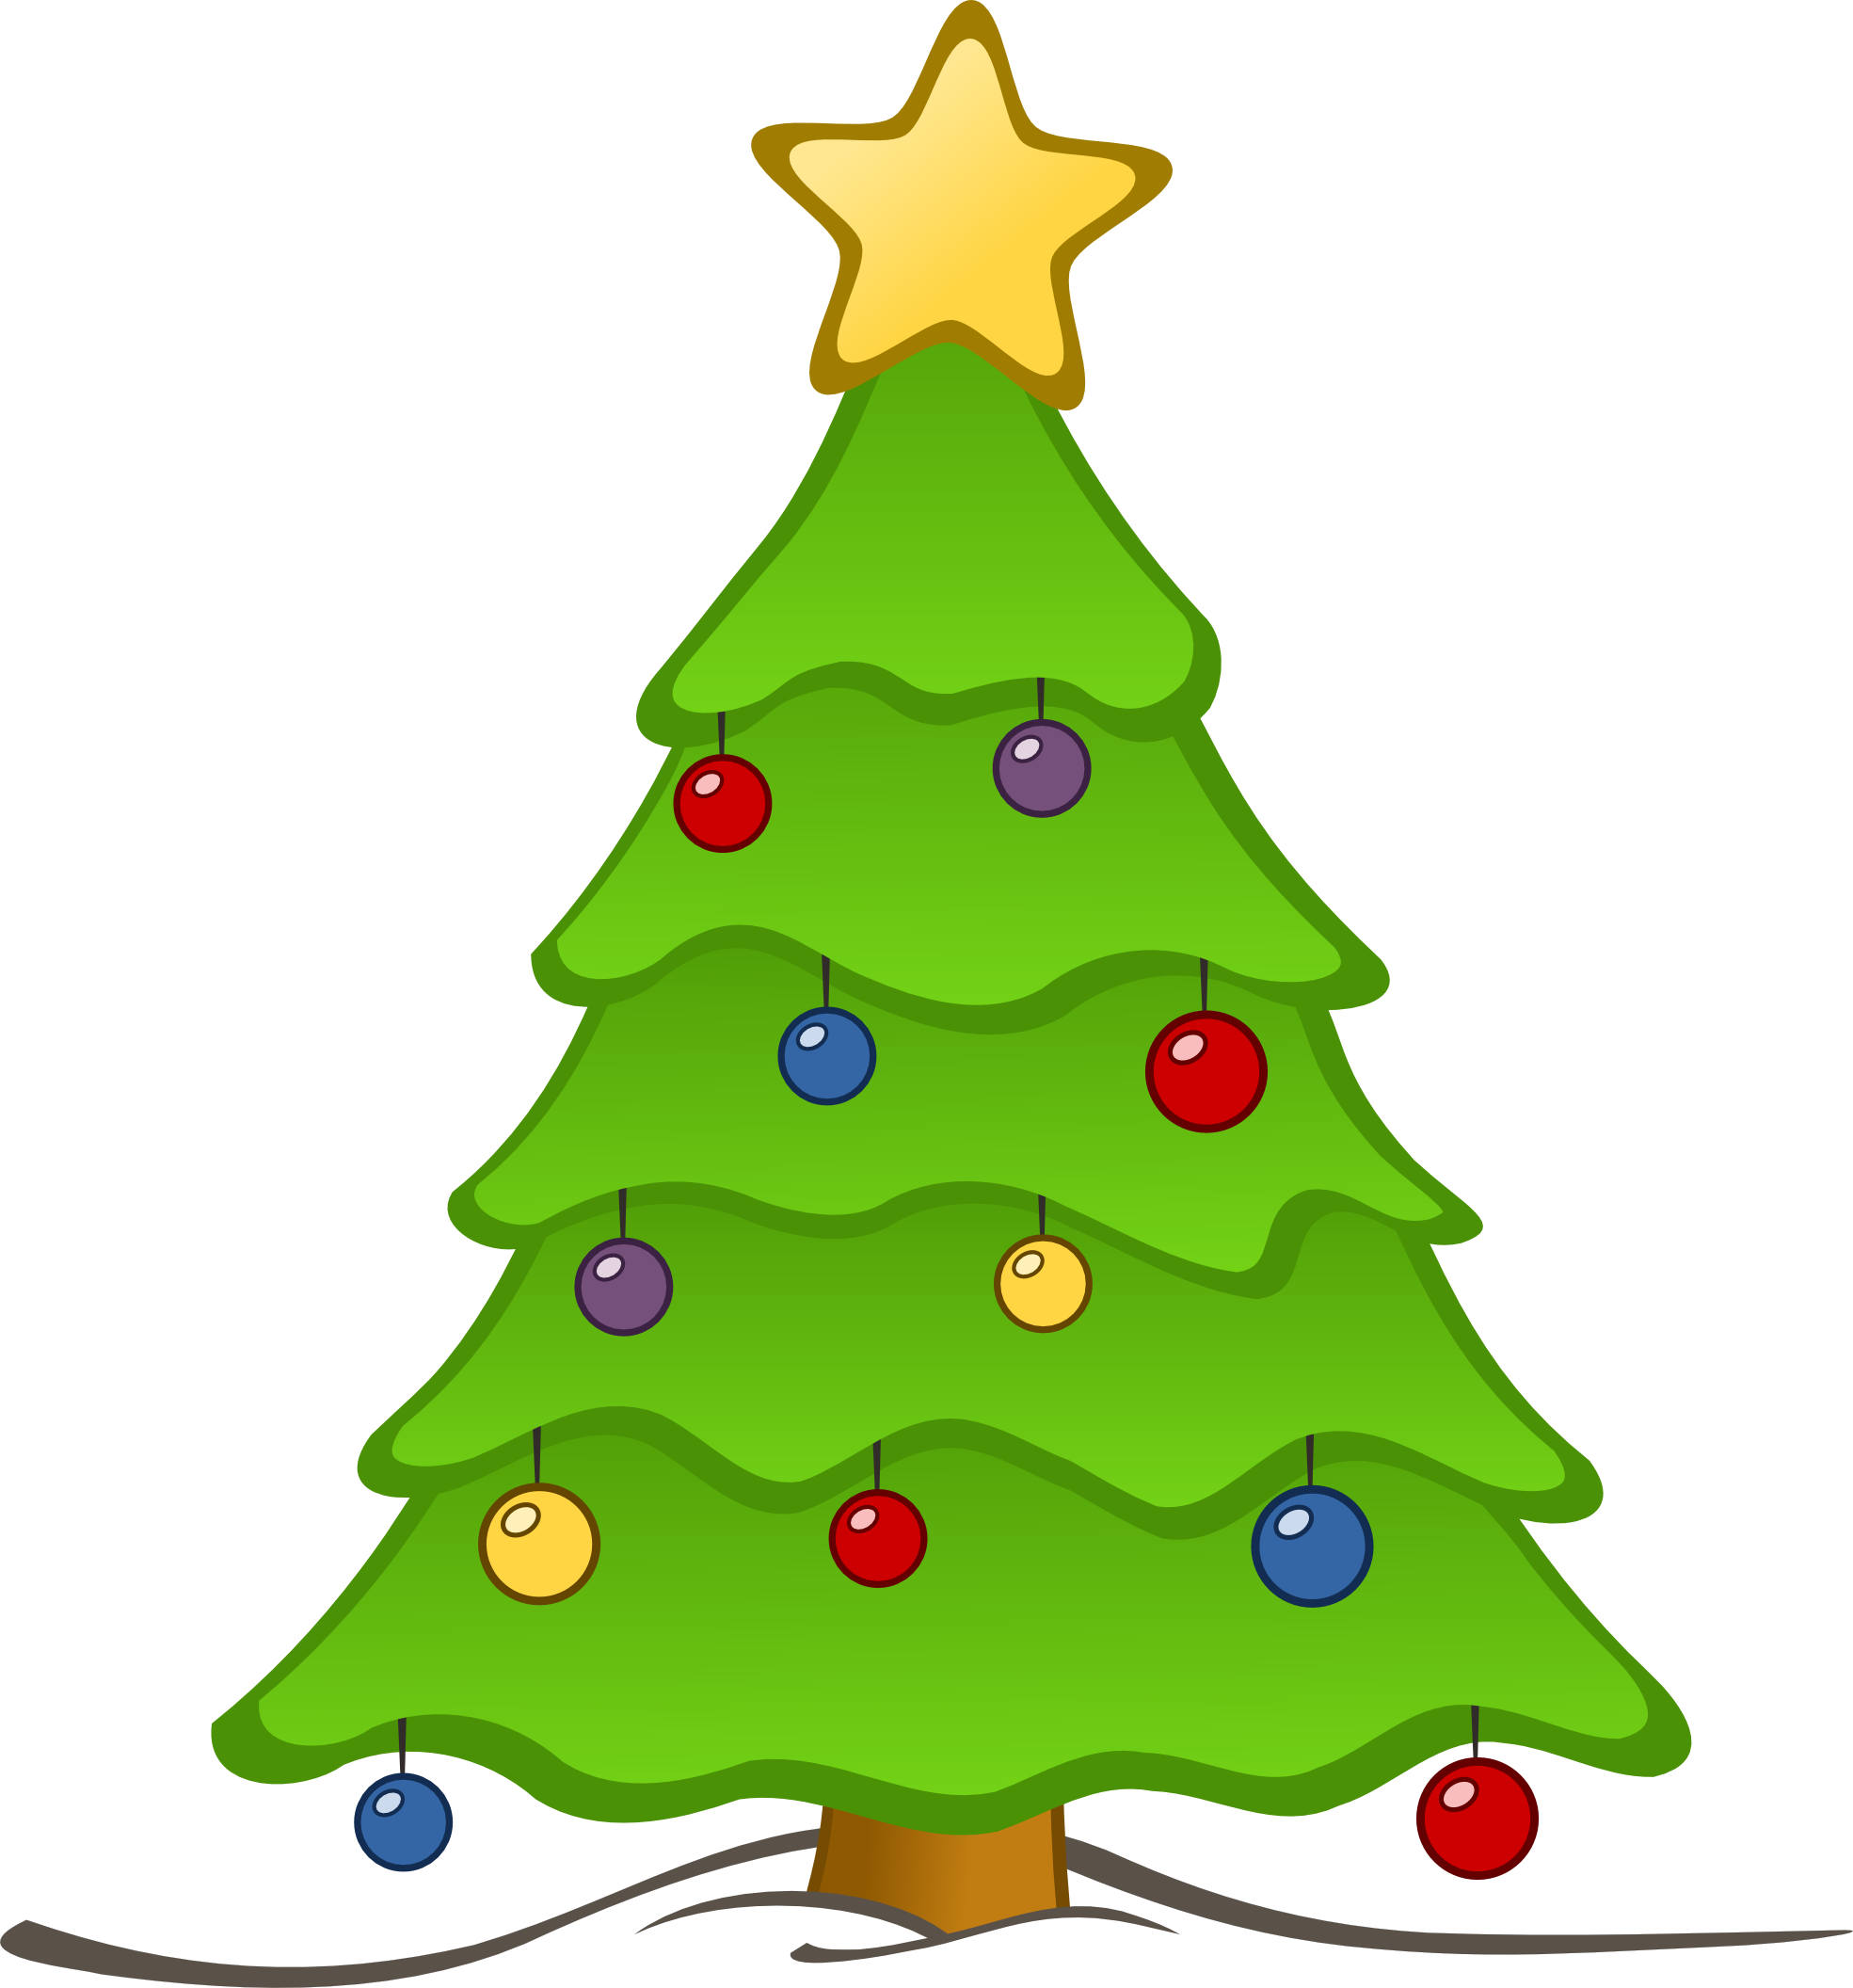 Funky christmas tree clipart image library library Christmas tree artwork clipart - ClipartFest image library library